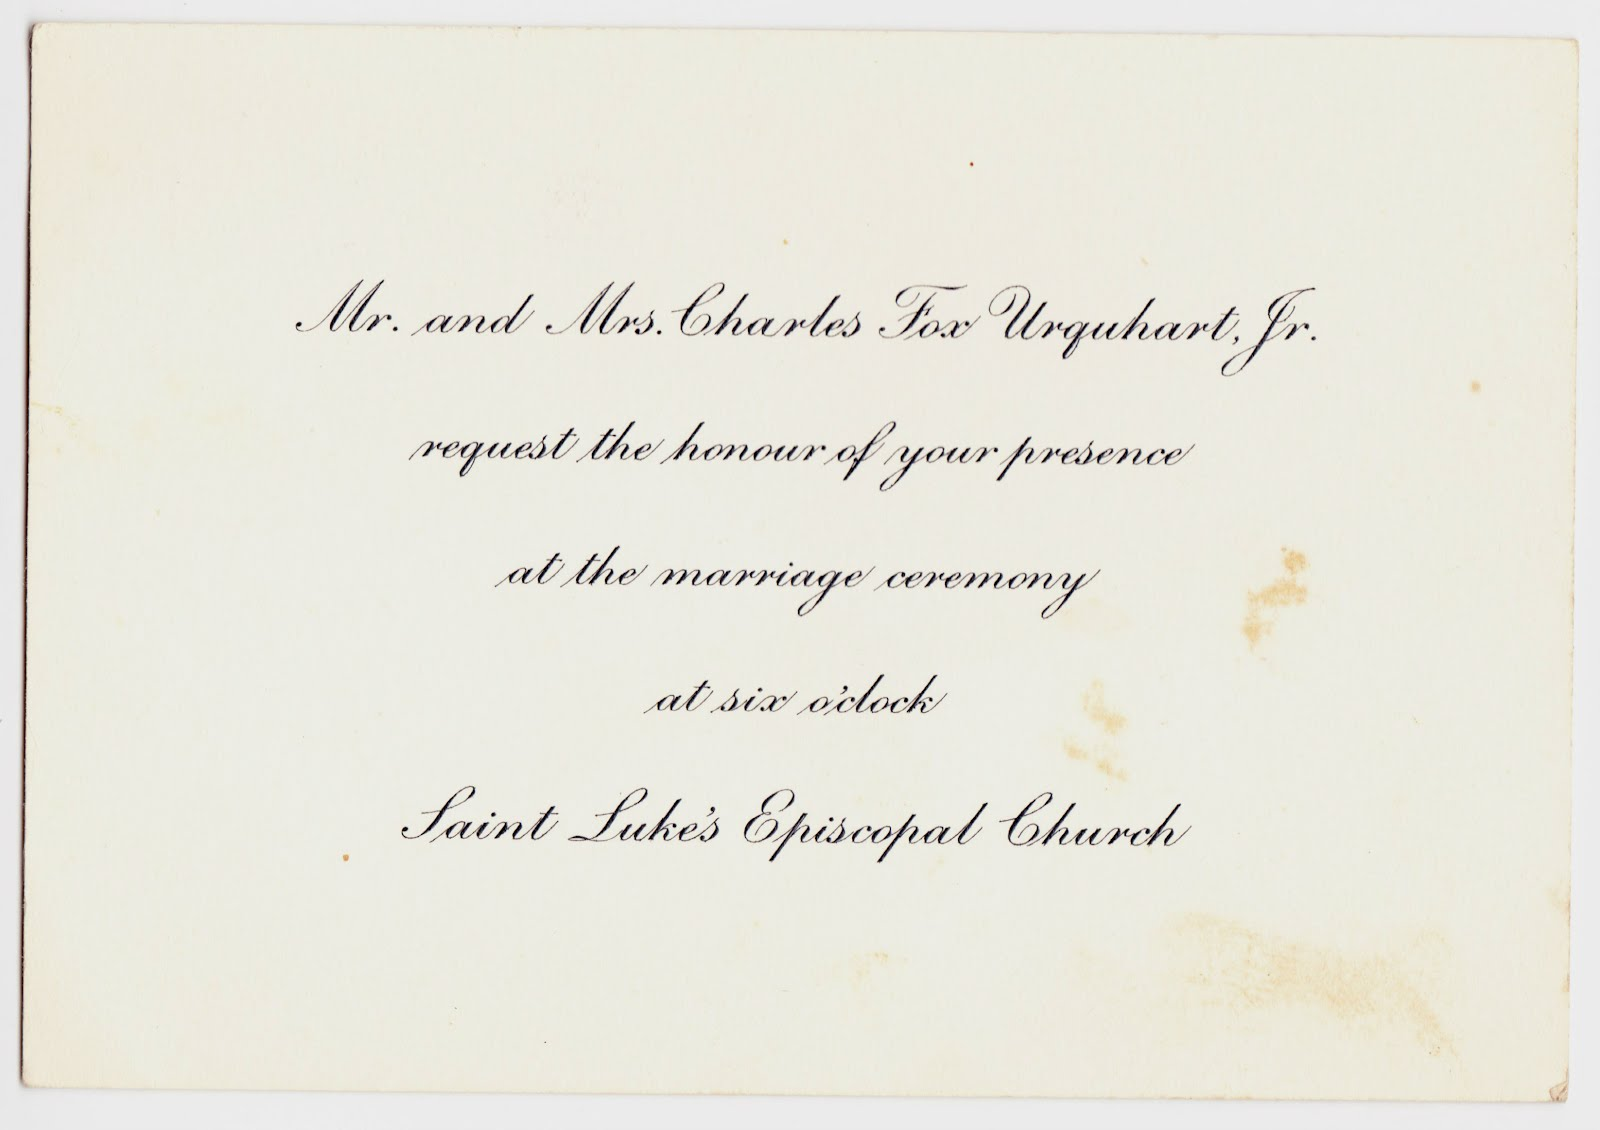 Honor Or Honour On Wedding Invitations: Papergreat: A Gaggle Of Great Things Tucked Away Inside Books